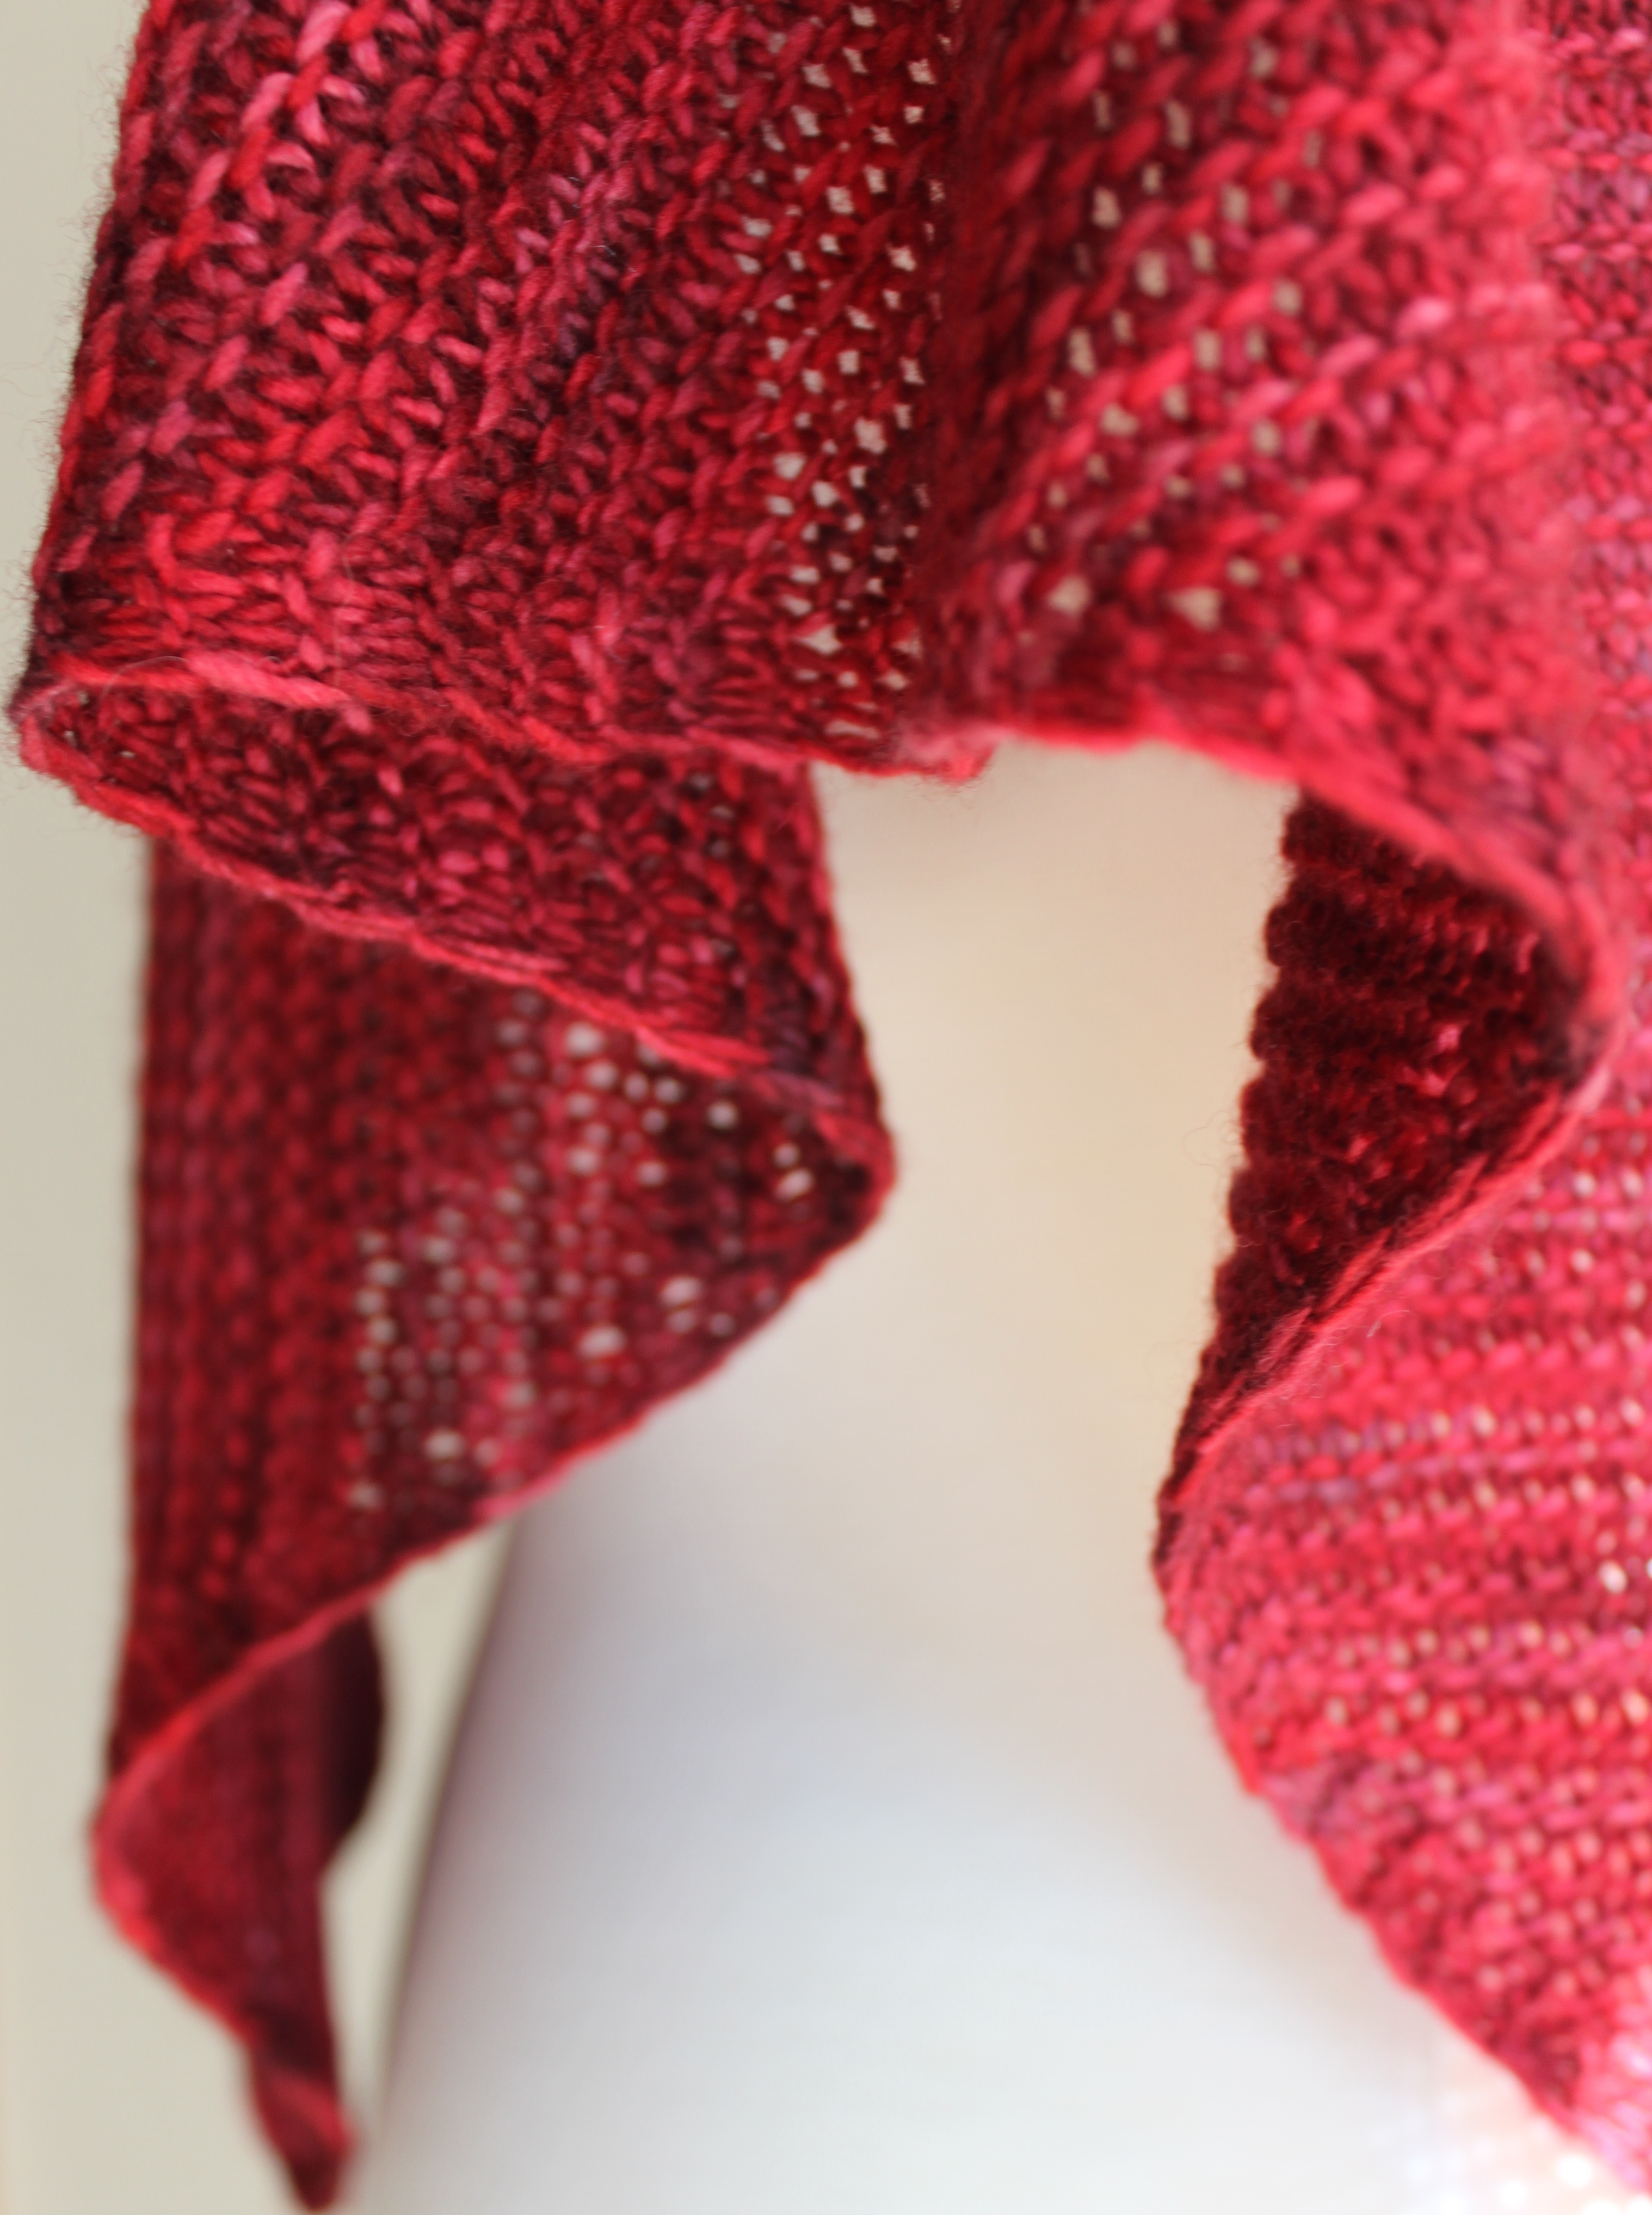 Knitting Patterns For Triangular Scarf : Free Knitting Patterns: Truly Triangular Scarf Leah Michelle Designs